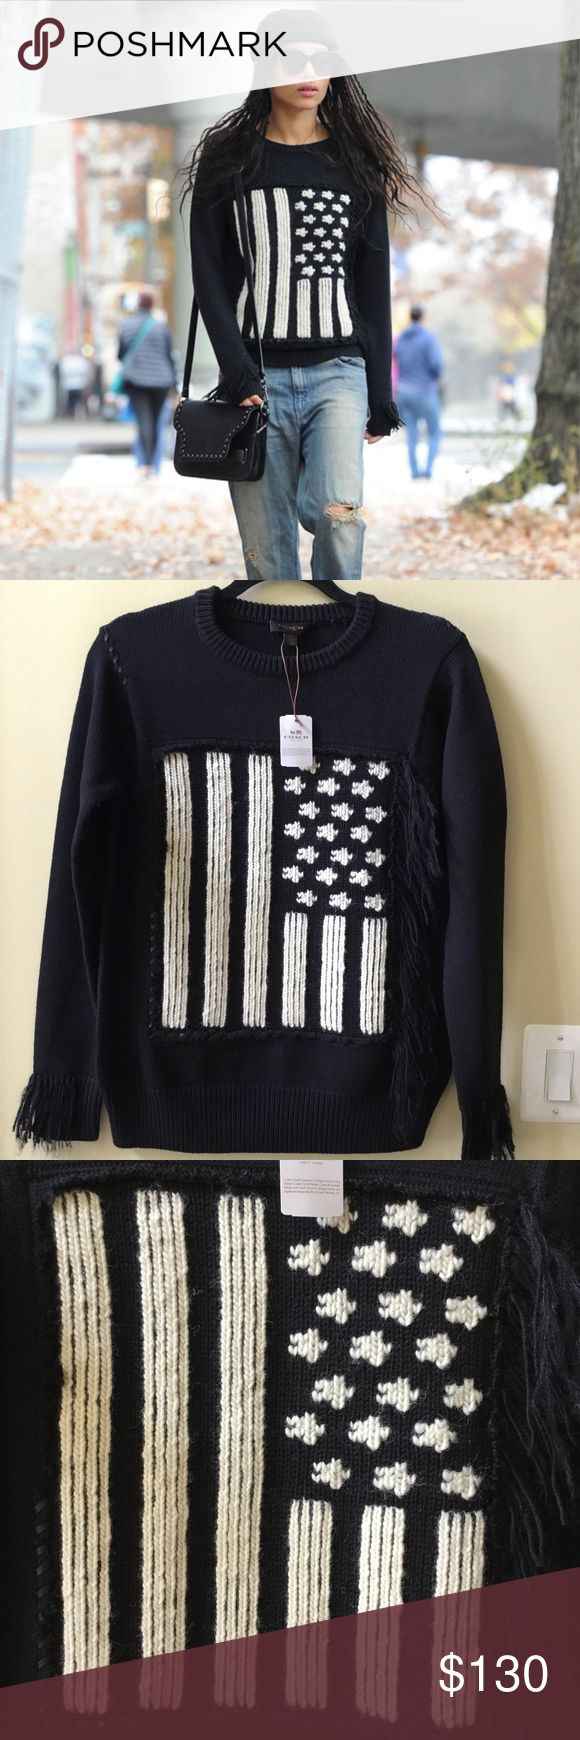 """NWT COACH FLAG INTARSIA BLACK SWEATER SIZE XS Nwt Coach Size XS Chest: 38"""" Armpit to armpit: 19"""" Length: 25"""" Flag Intarsia Black Sweater Pure merino wool in a chunky knit imbues this striking rendering of the stars and stripes with luxurious softness and exceptional warmth. Its monochrome motif is intarsia-knit by hand for clear, inlaid fields of contrast colour, then hand-appliquéd using Rip and Repair baseball-stitch details—our exclusive leather homage to the great American pastime…"""